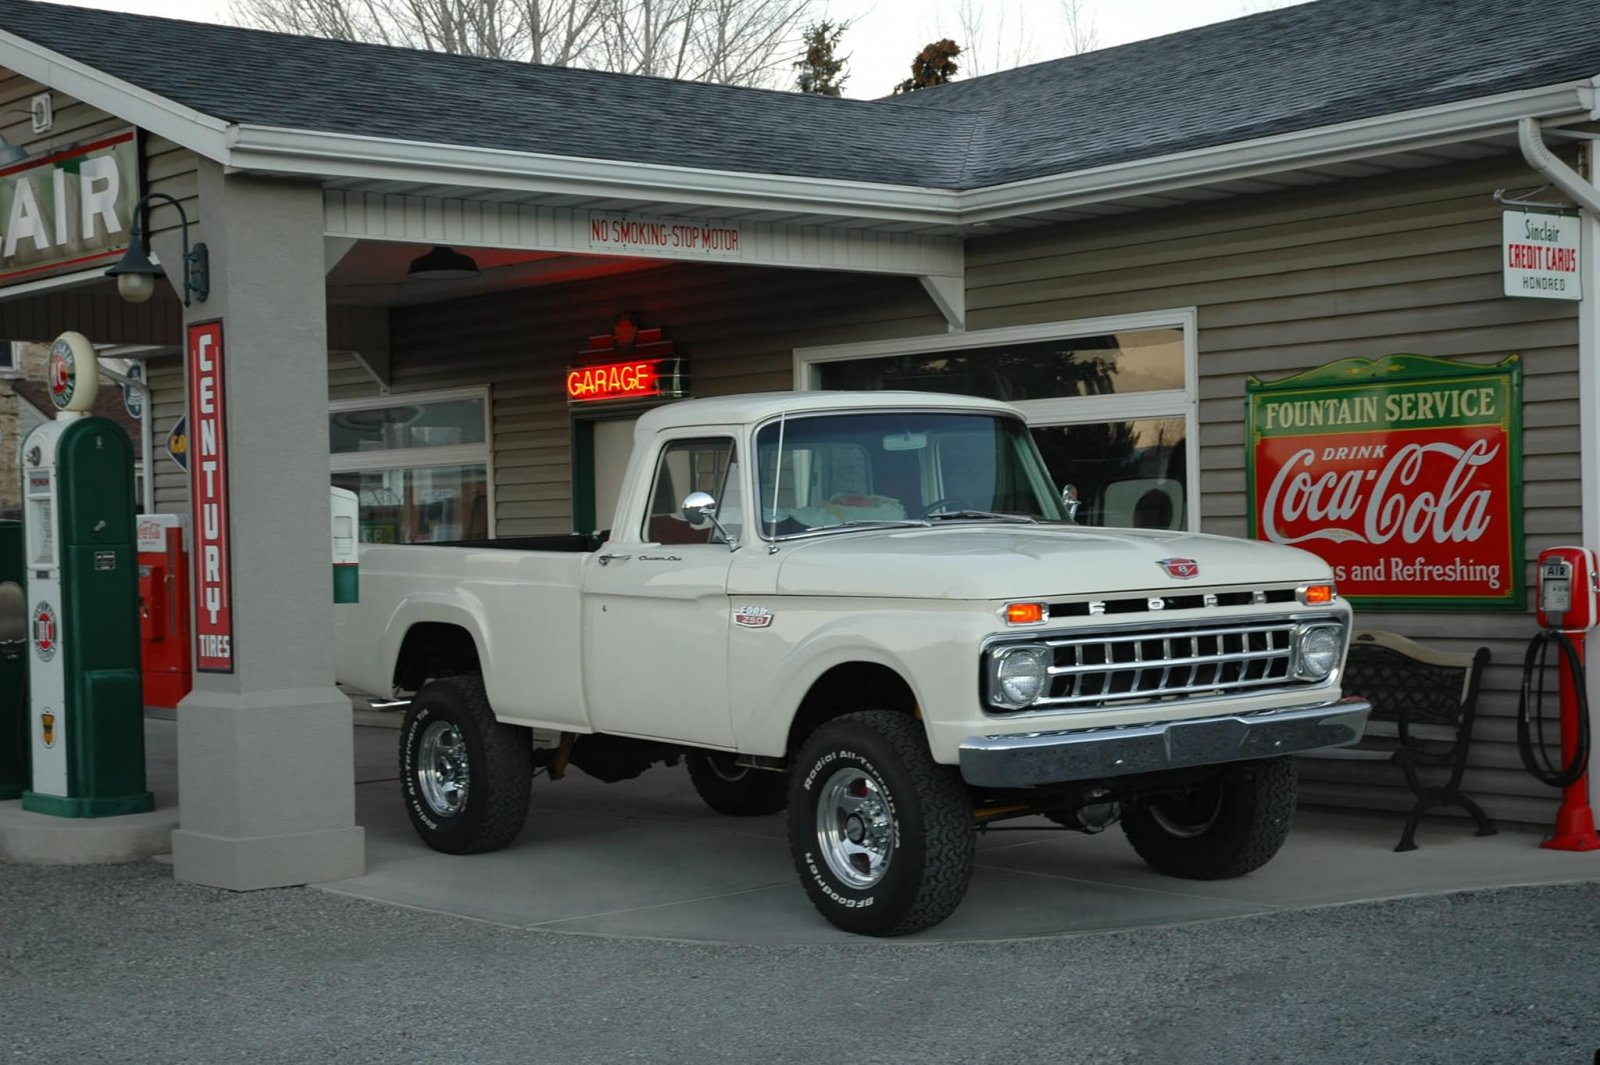 1965 Ford F-250 Clean Rare Truck With Unique Color 2.jpg